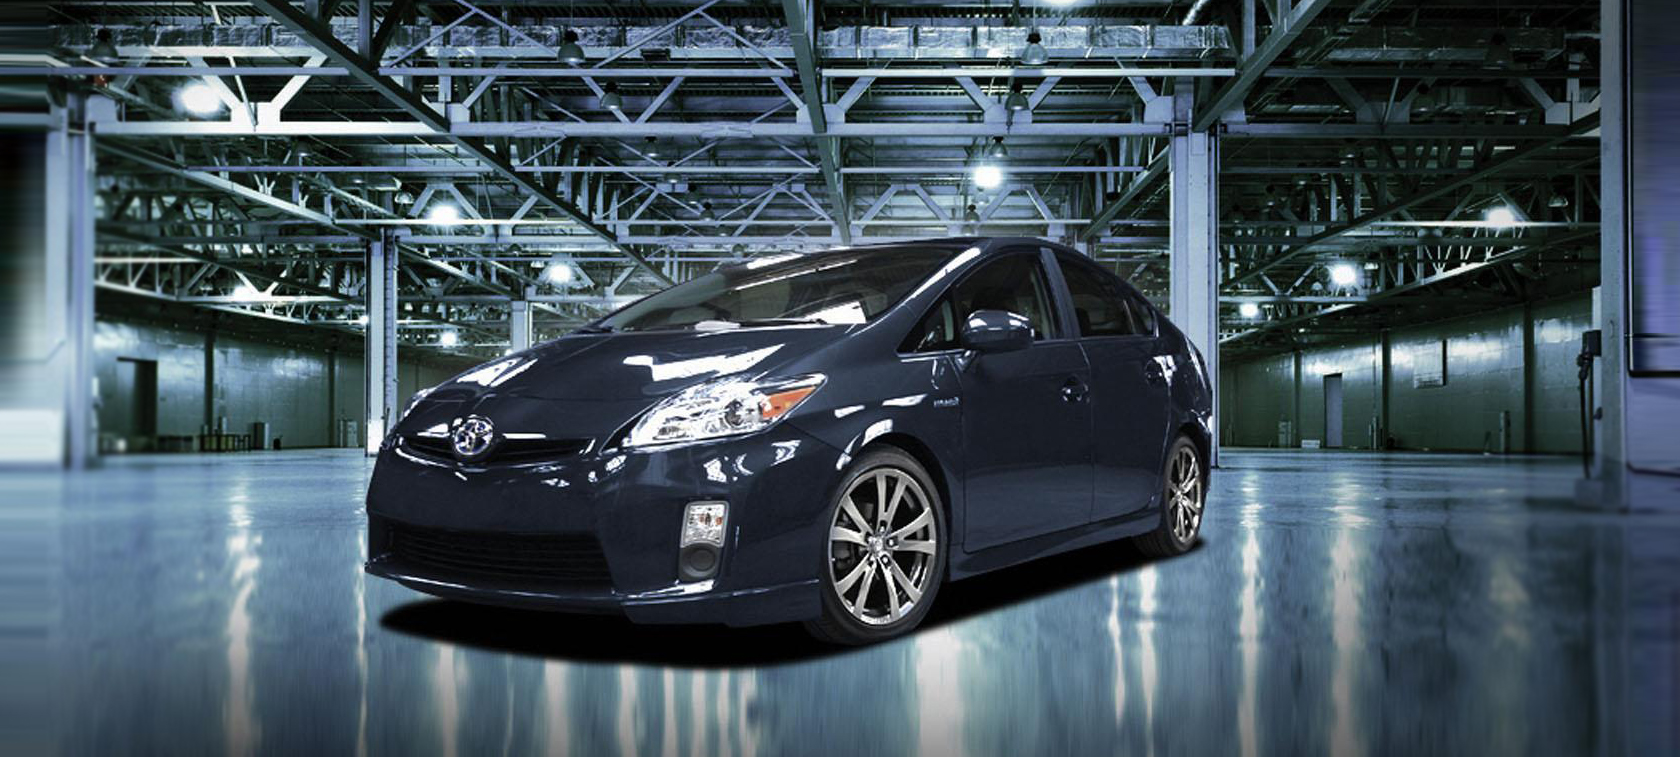 Toyota Prius PLUS Performance Package - plus za wygląd